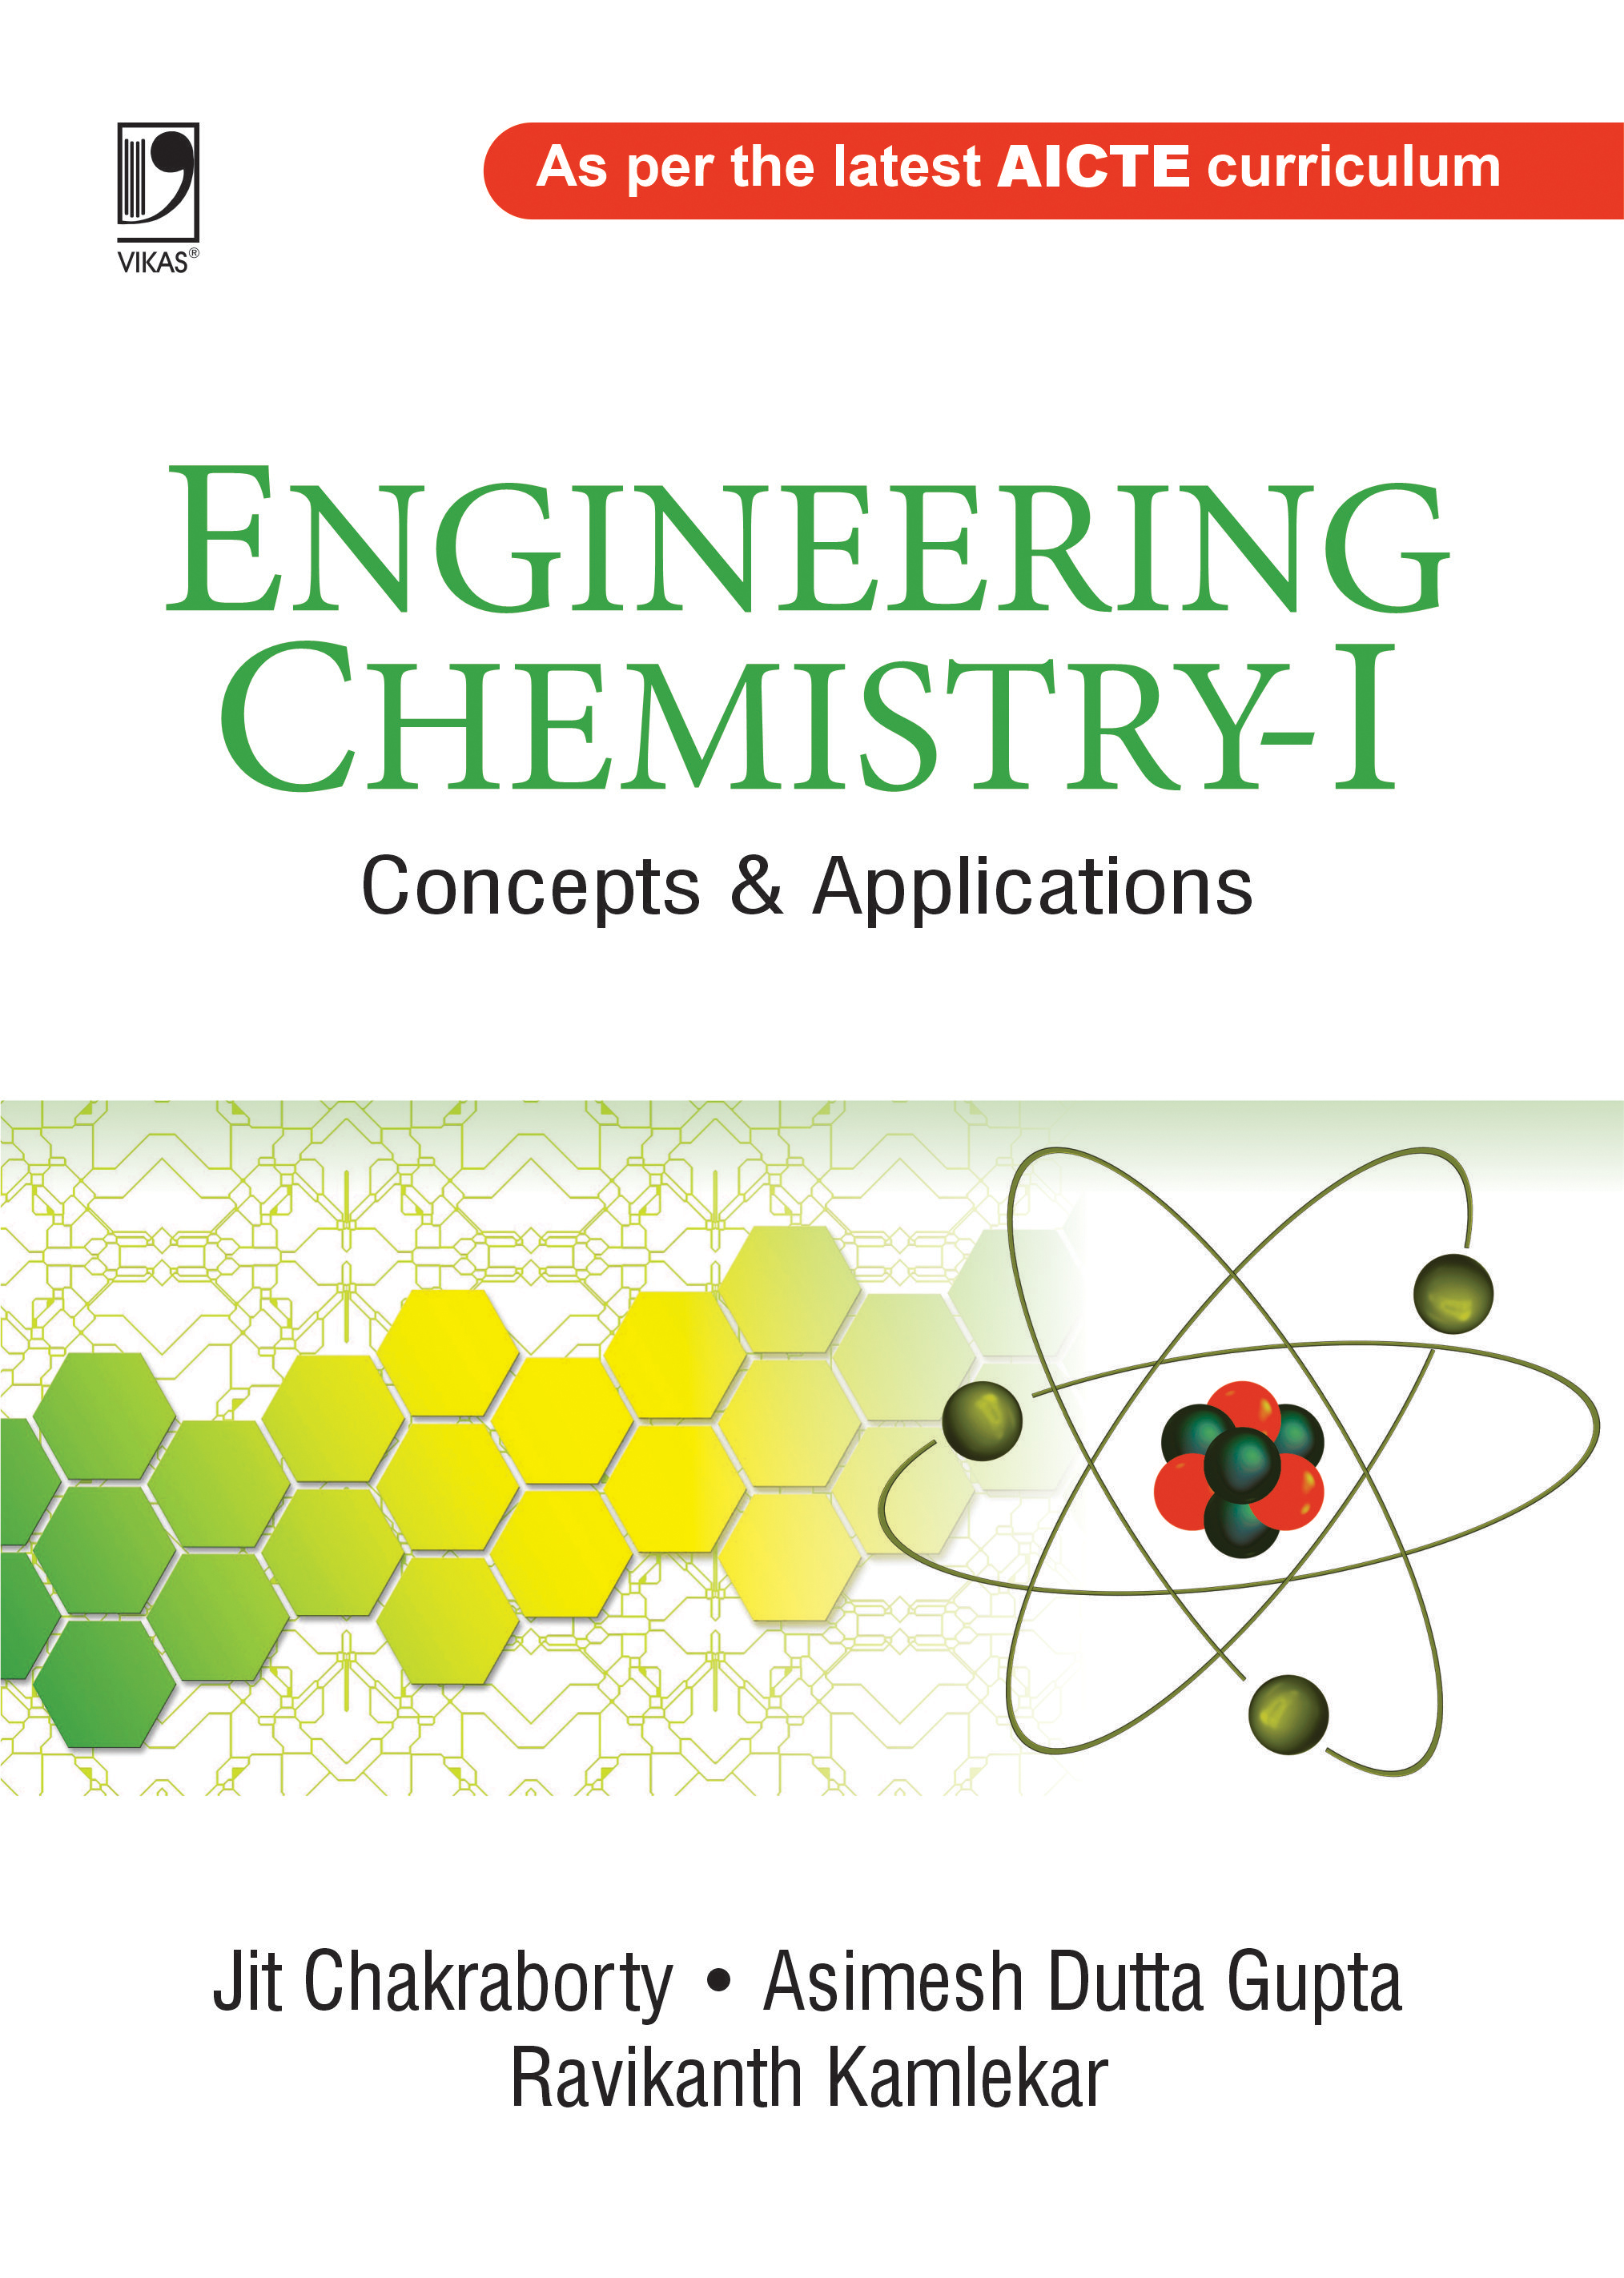 Engineering Chemistry - I: Concepts & Applications by Jit Chakraborty